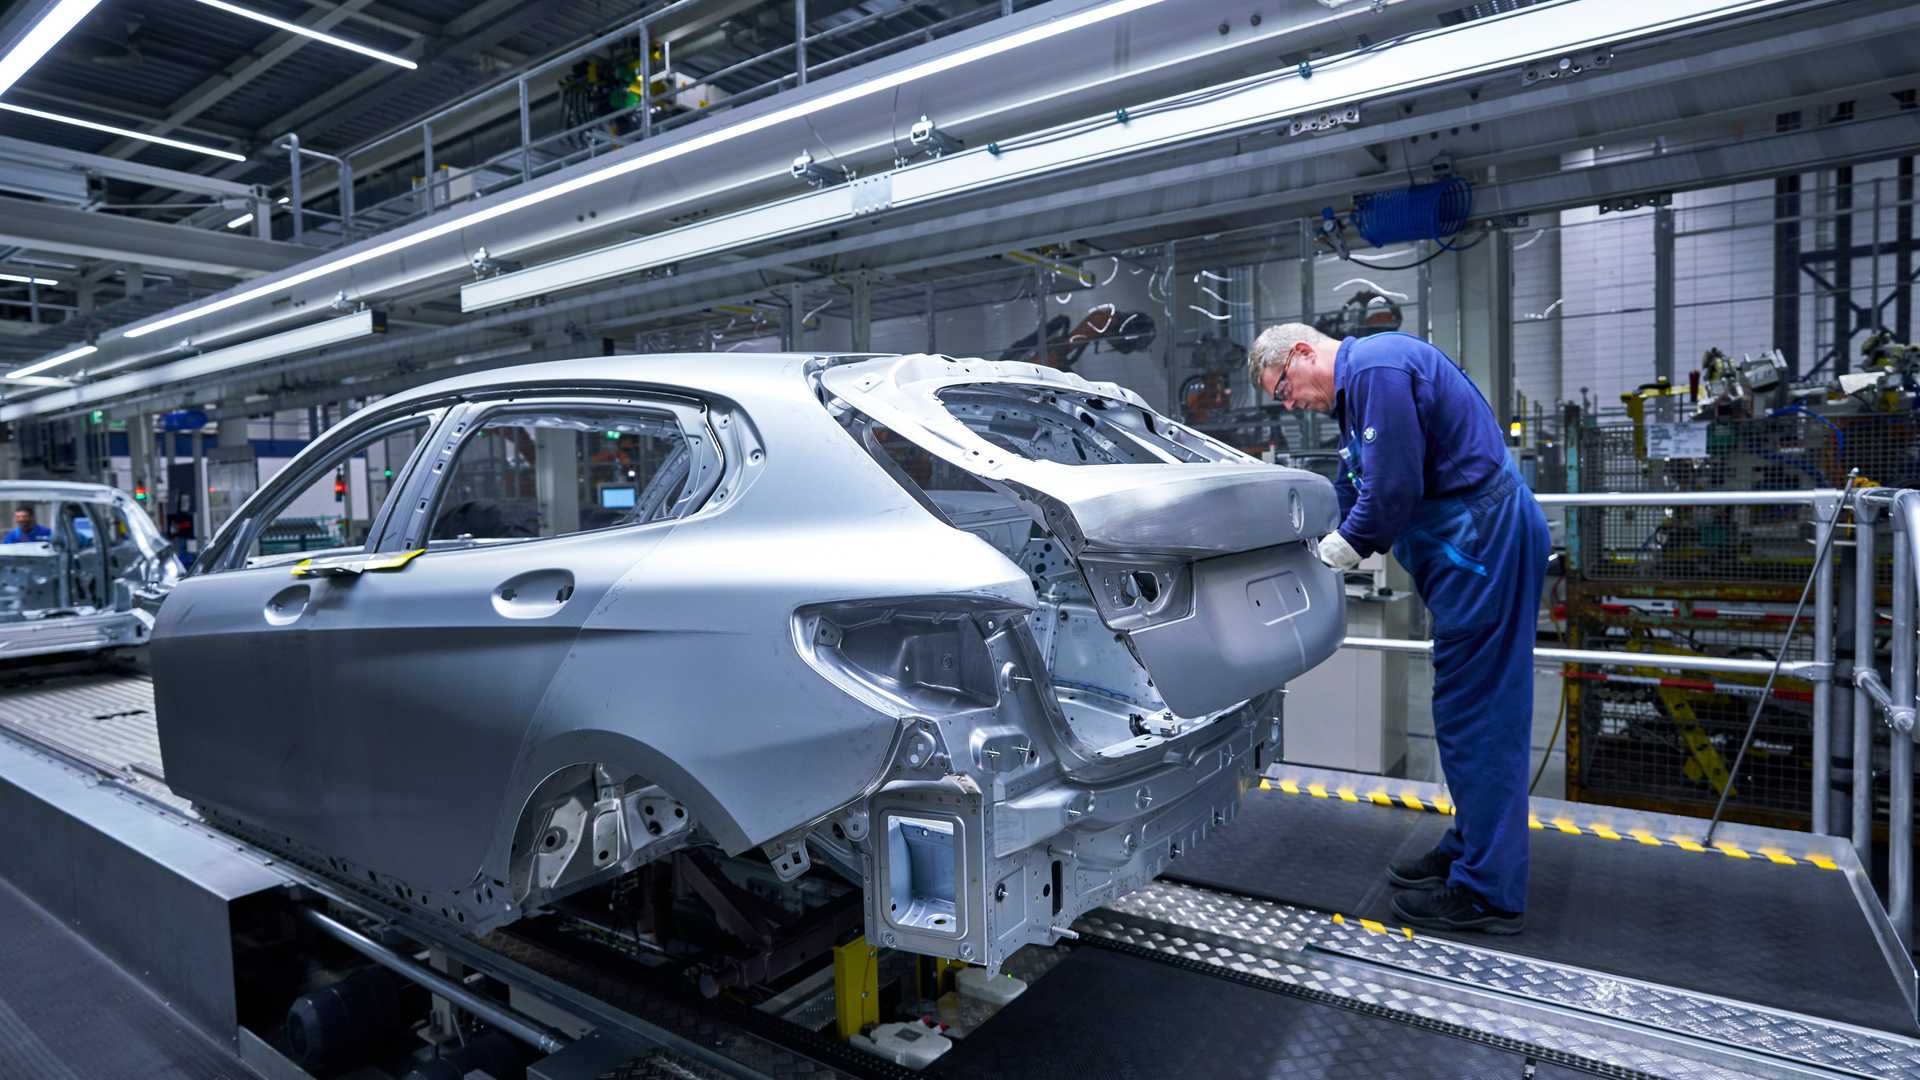 2020 Bmw 1 Series Production At Leipzig Factory 4208162